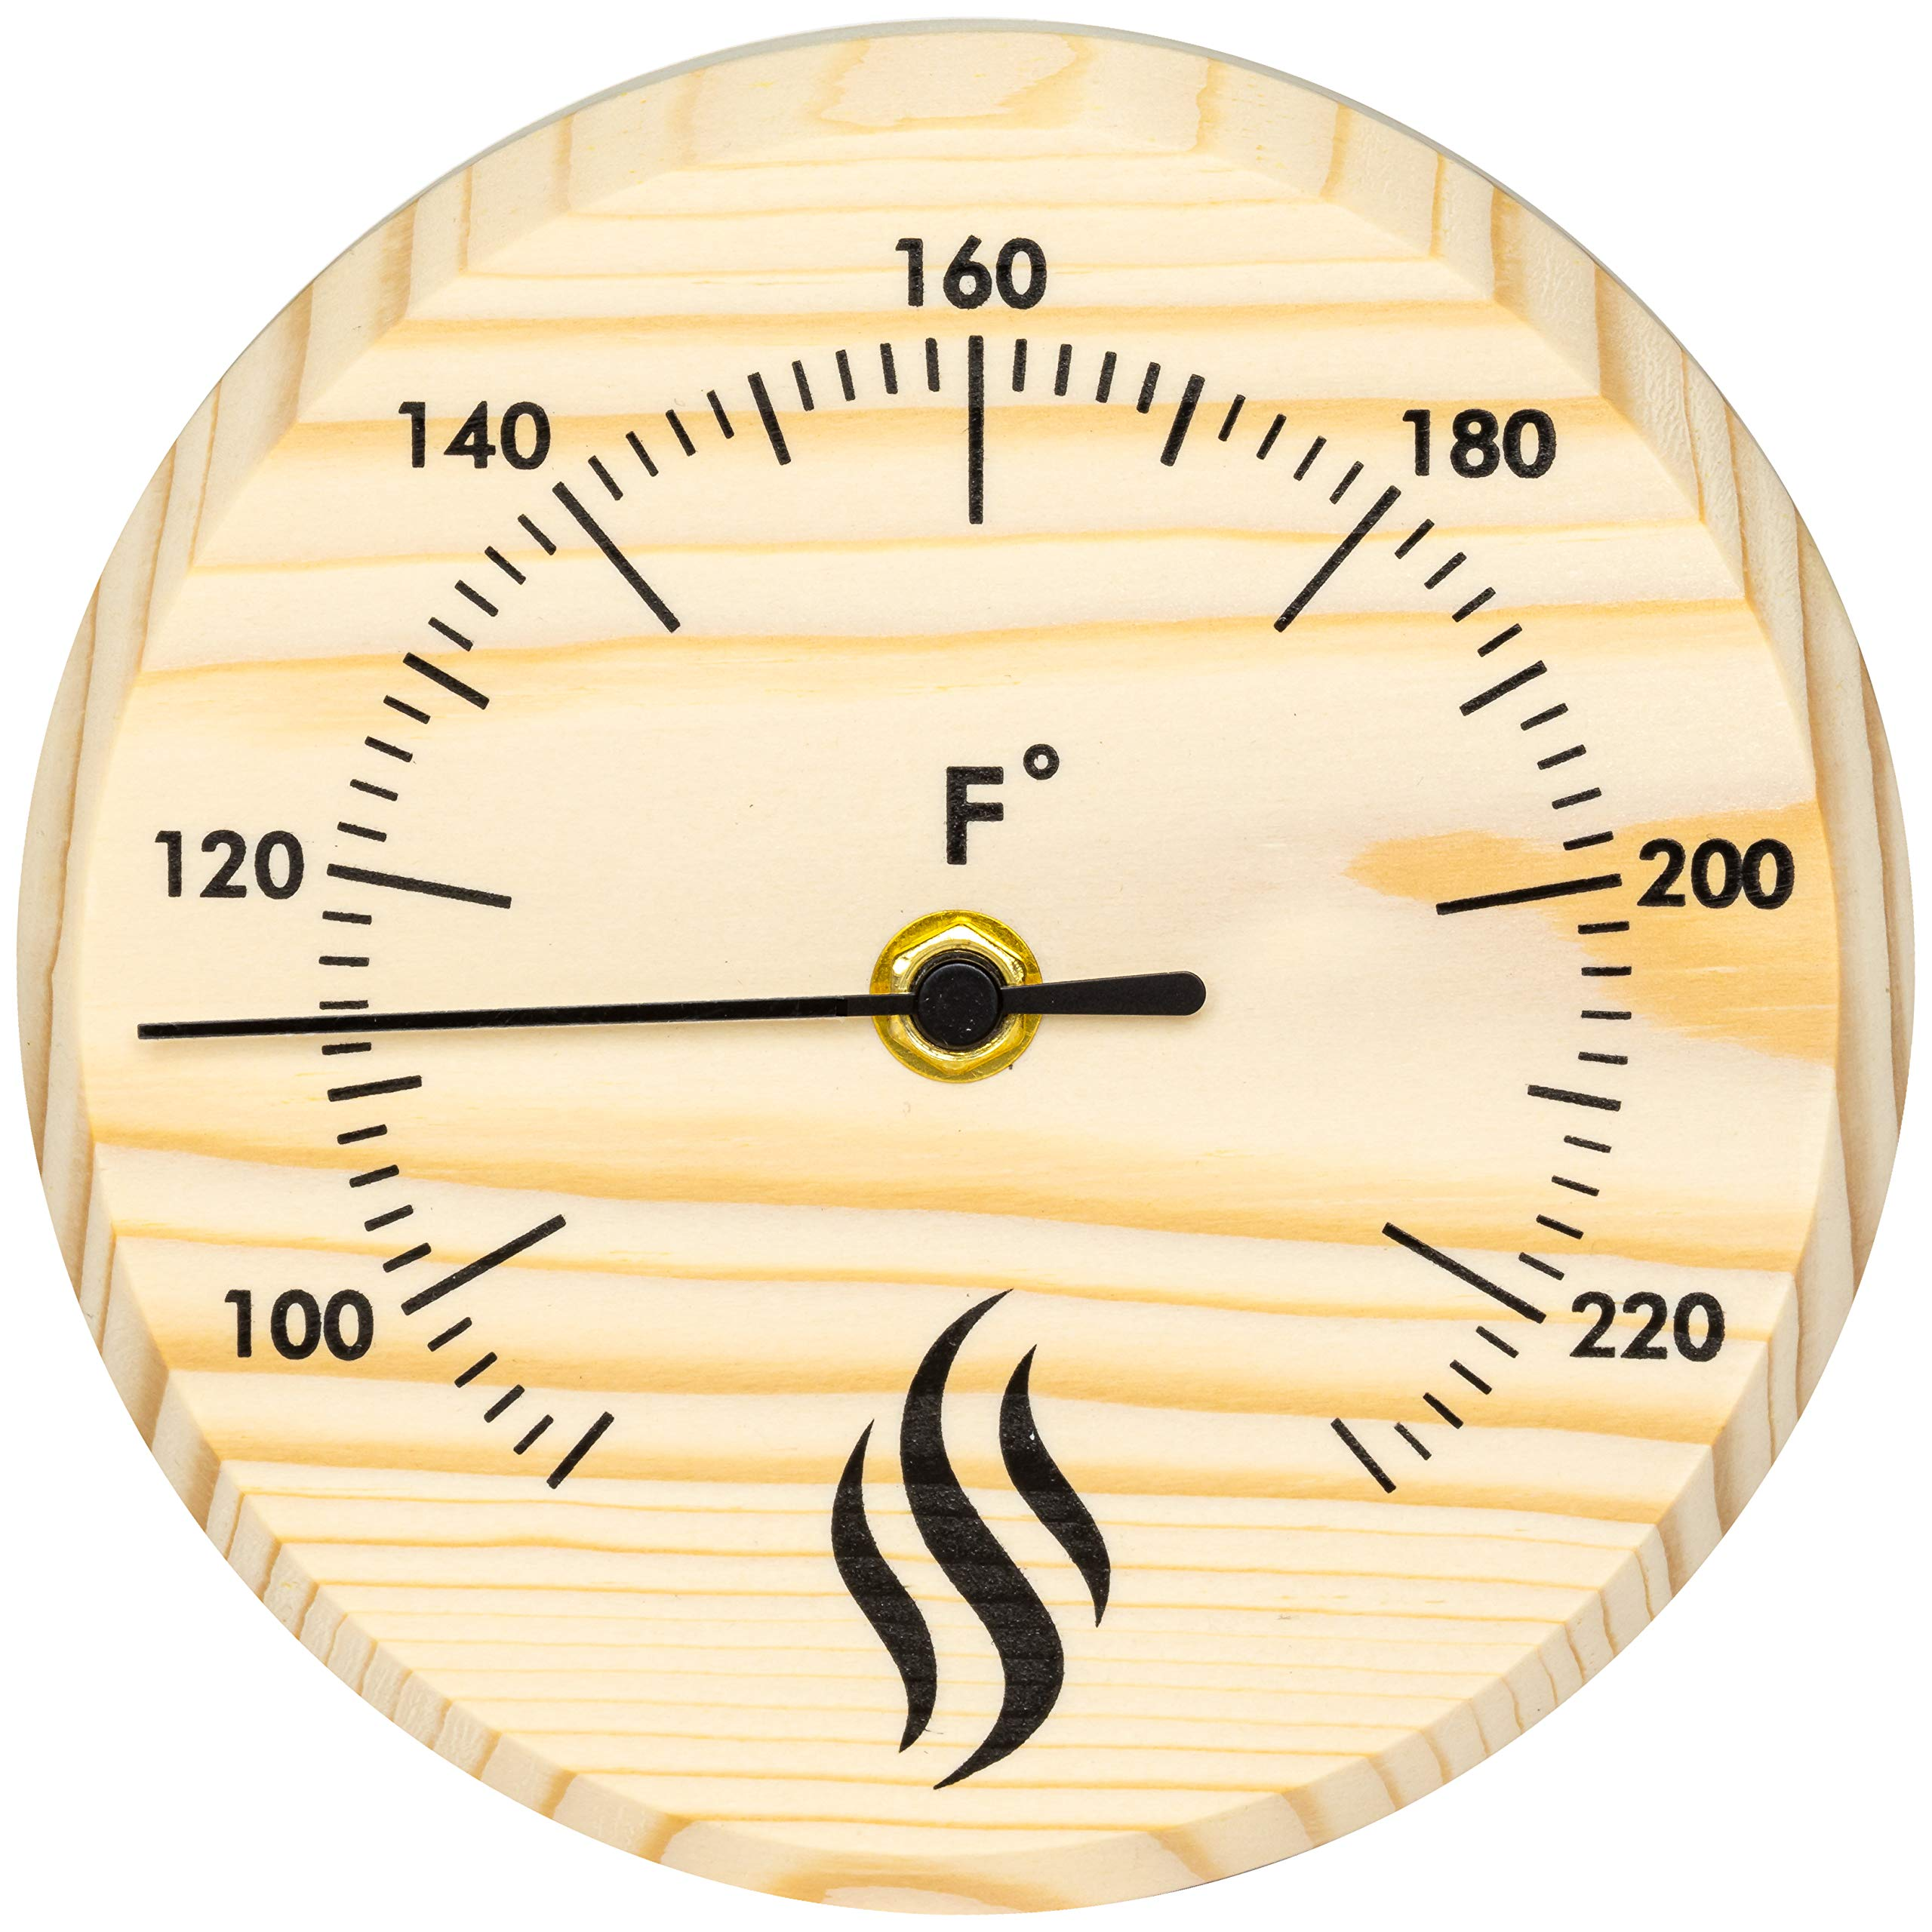 Wildgoose Co Sauna Thermometer Fahrenheit (6'' Inch Diameter) Thermometer for Sauna, Sauna Accessories for Saunas, Sauna Room or Sauna Outdoor; Sauna Thermometer Wood, Sauna Room Thermometer by Wildgoose Co